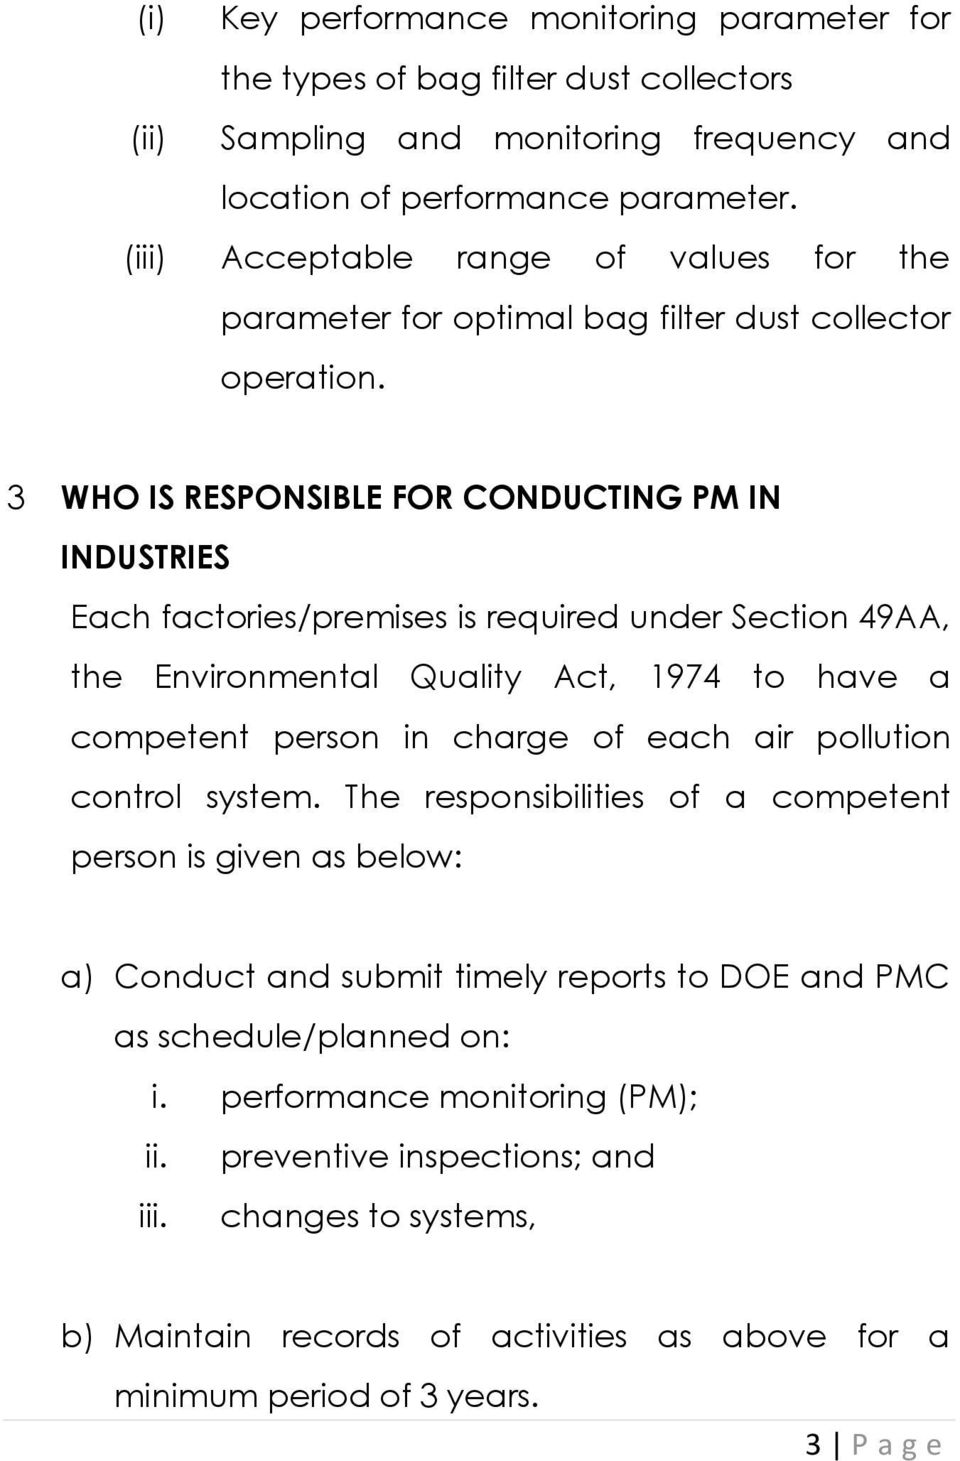 A Guidebook On Performance Monitoring Of Bag Filter Dust Collector Pdf Free Download